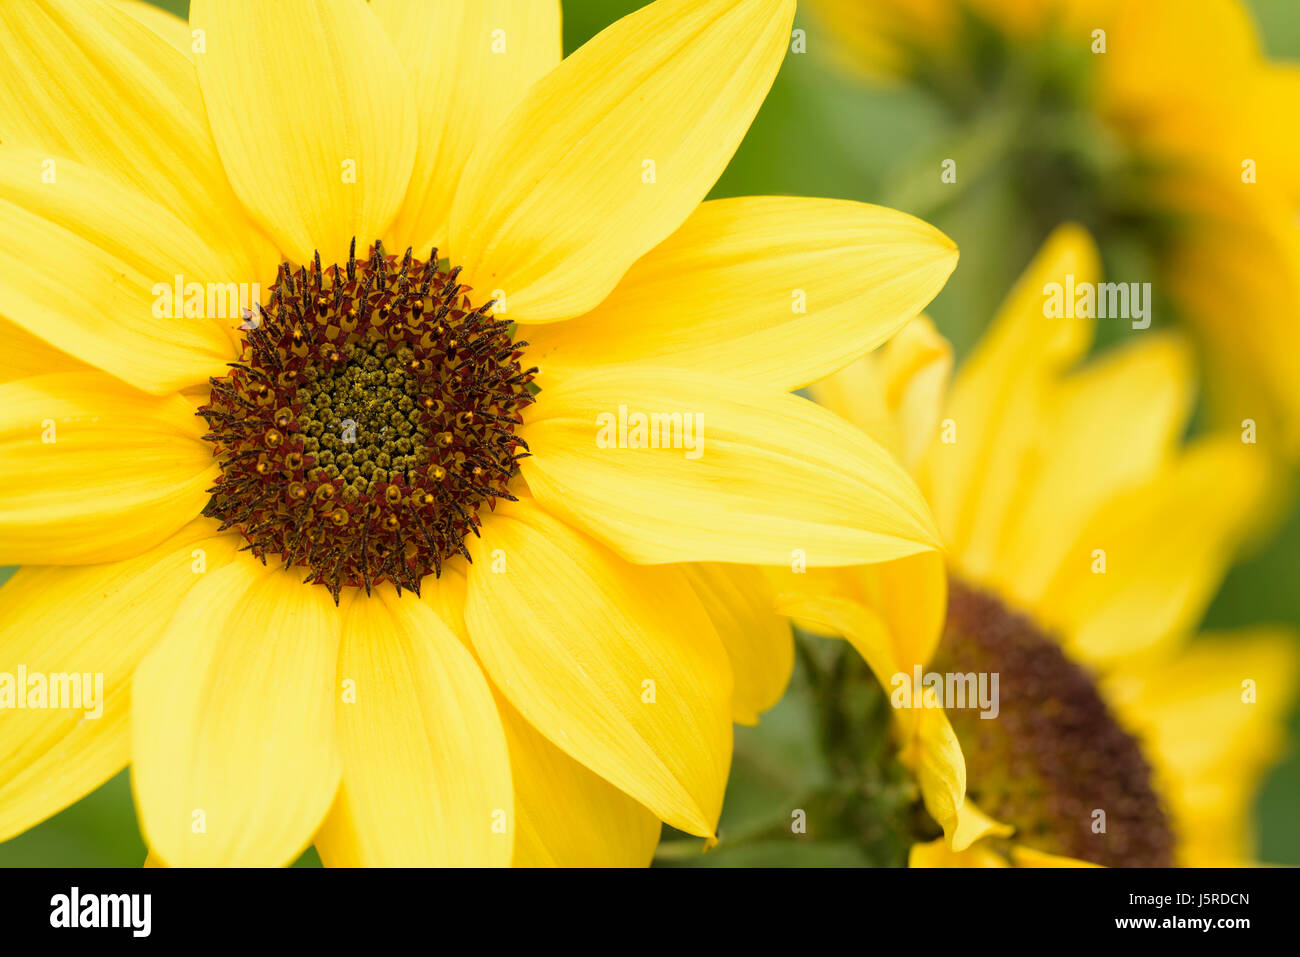 Sunflower, Common sunflower, Helianthus annuus, Close up detail of yellow coloured flower growing outdoor. Stock Photo